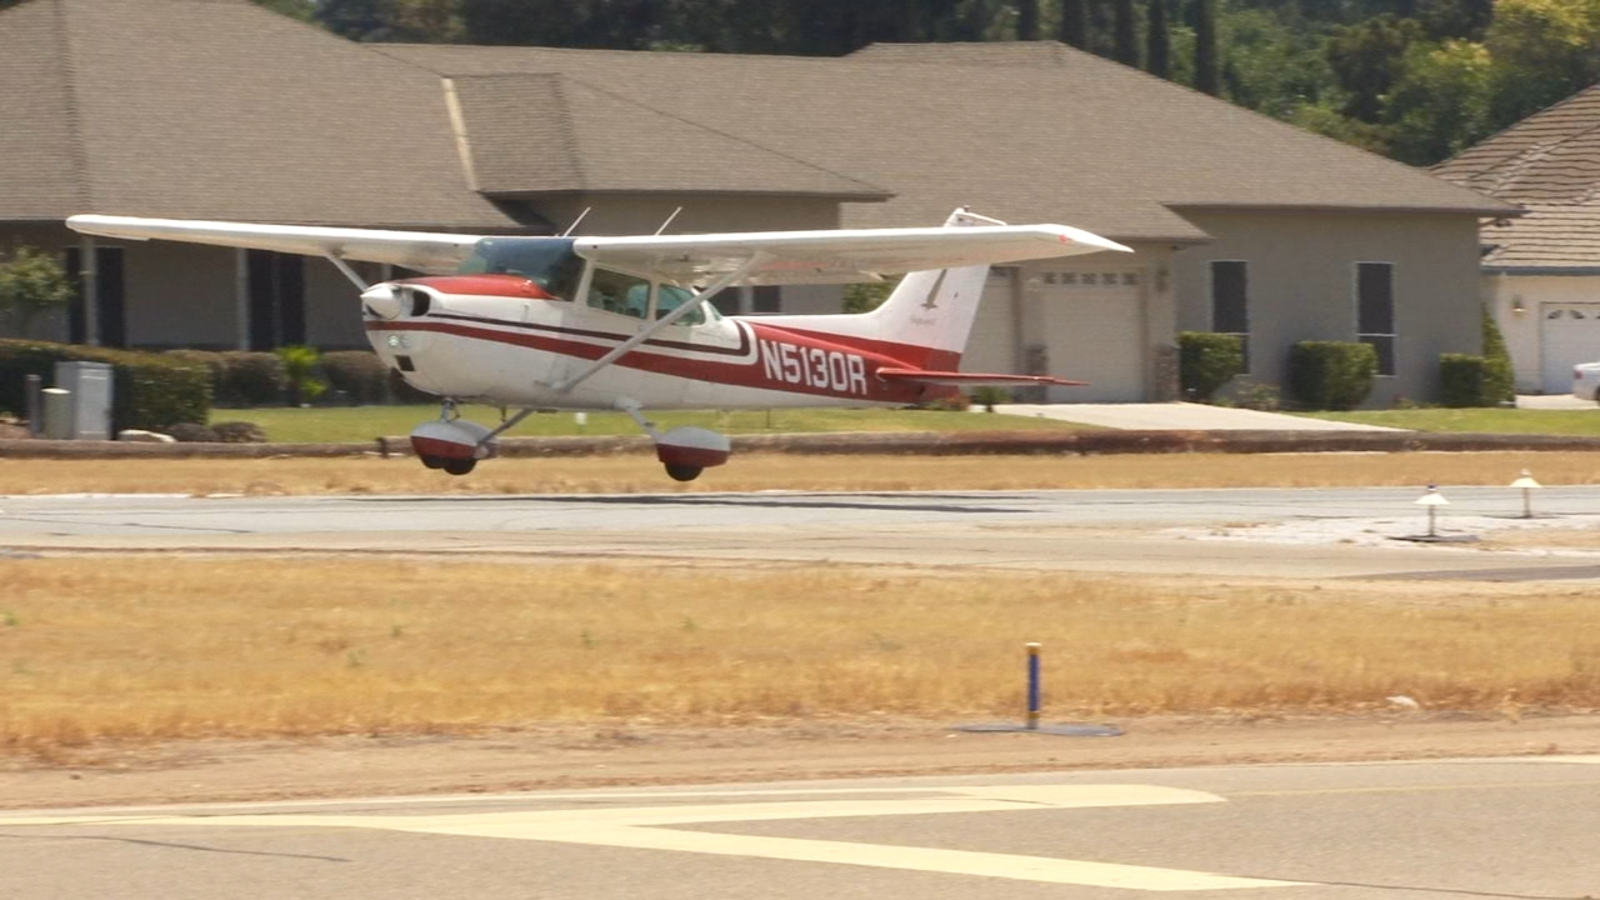 Planes, helicopters, cars at Fresno events